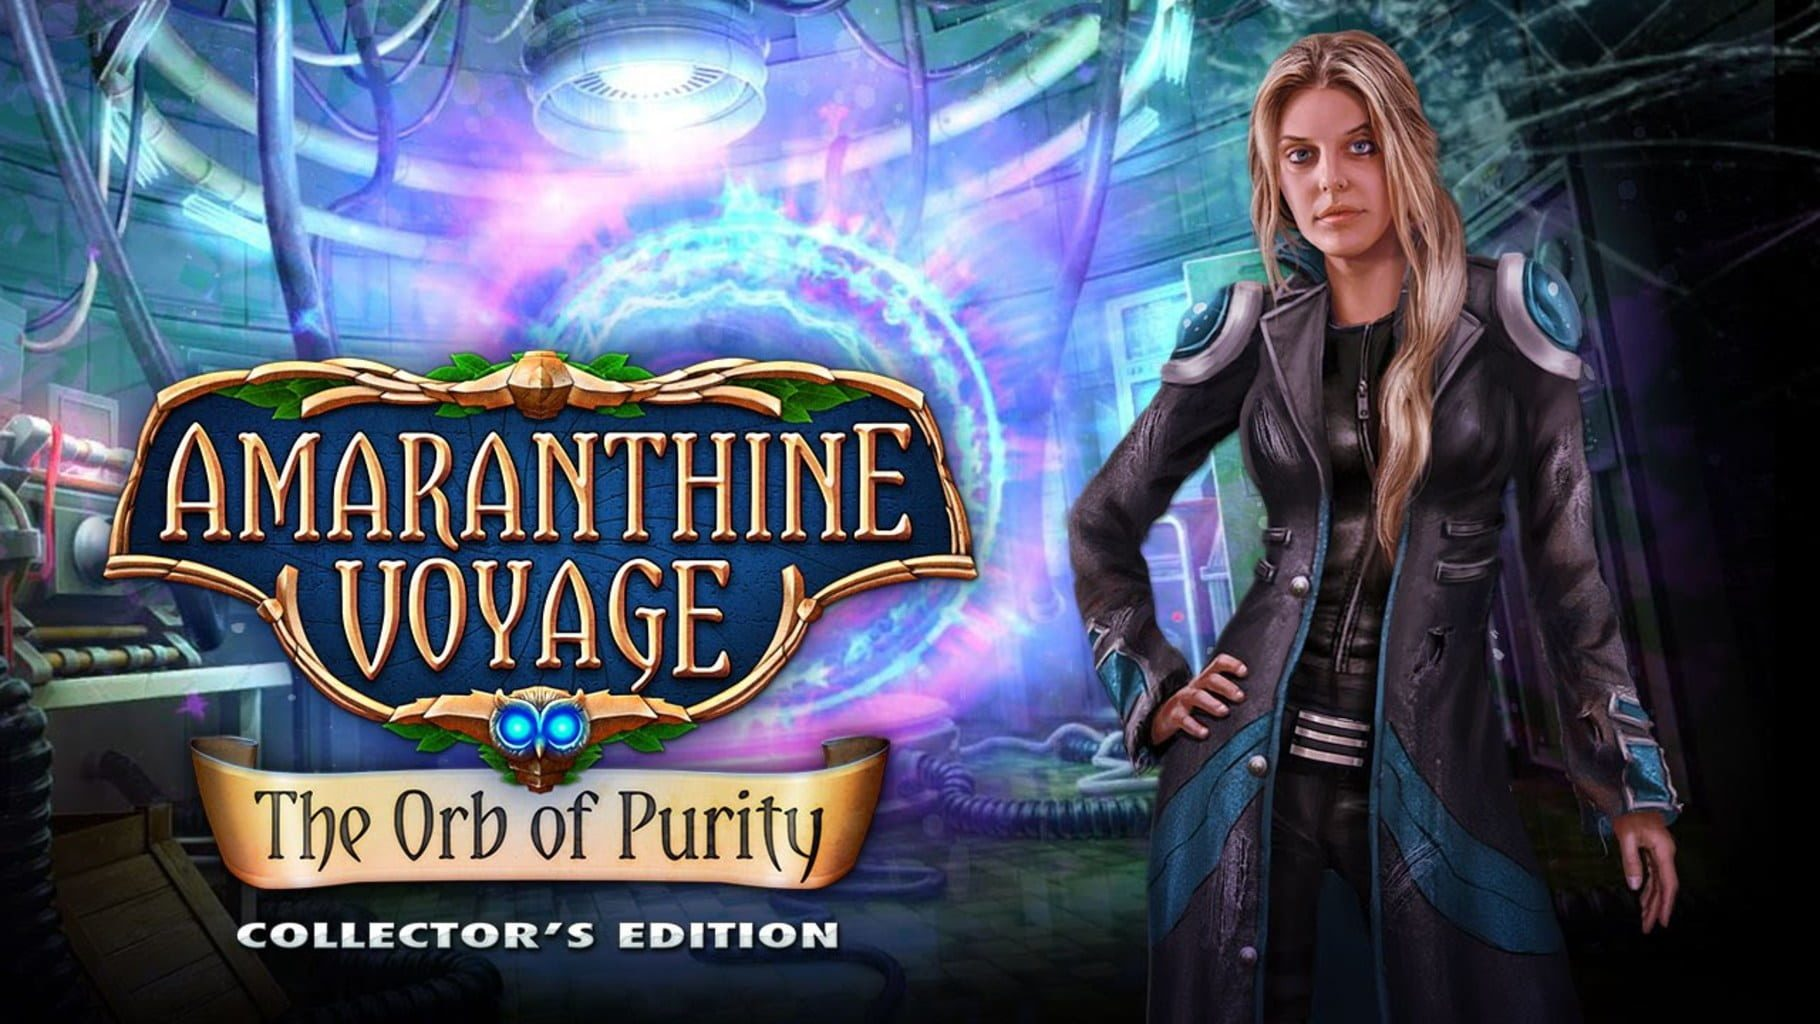 buy Amaranthine Voyage: The Orb of Purity Collector's Edition cd key for pc platform